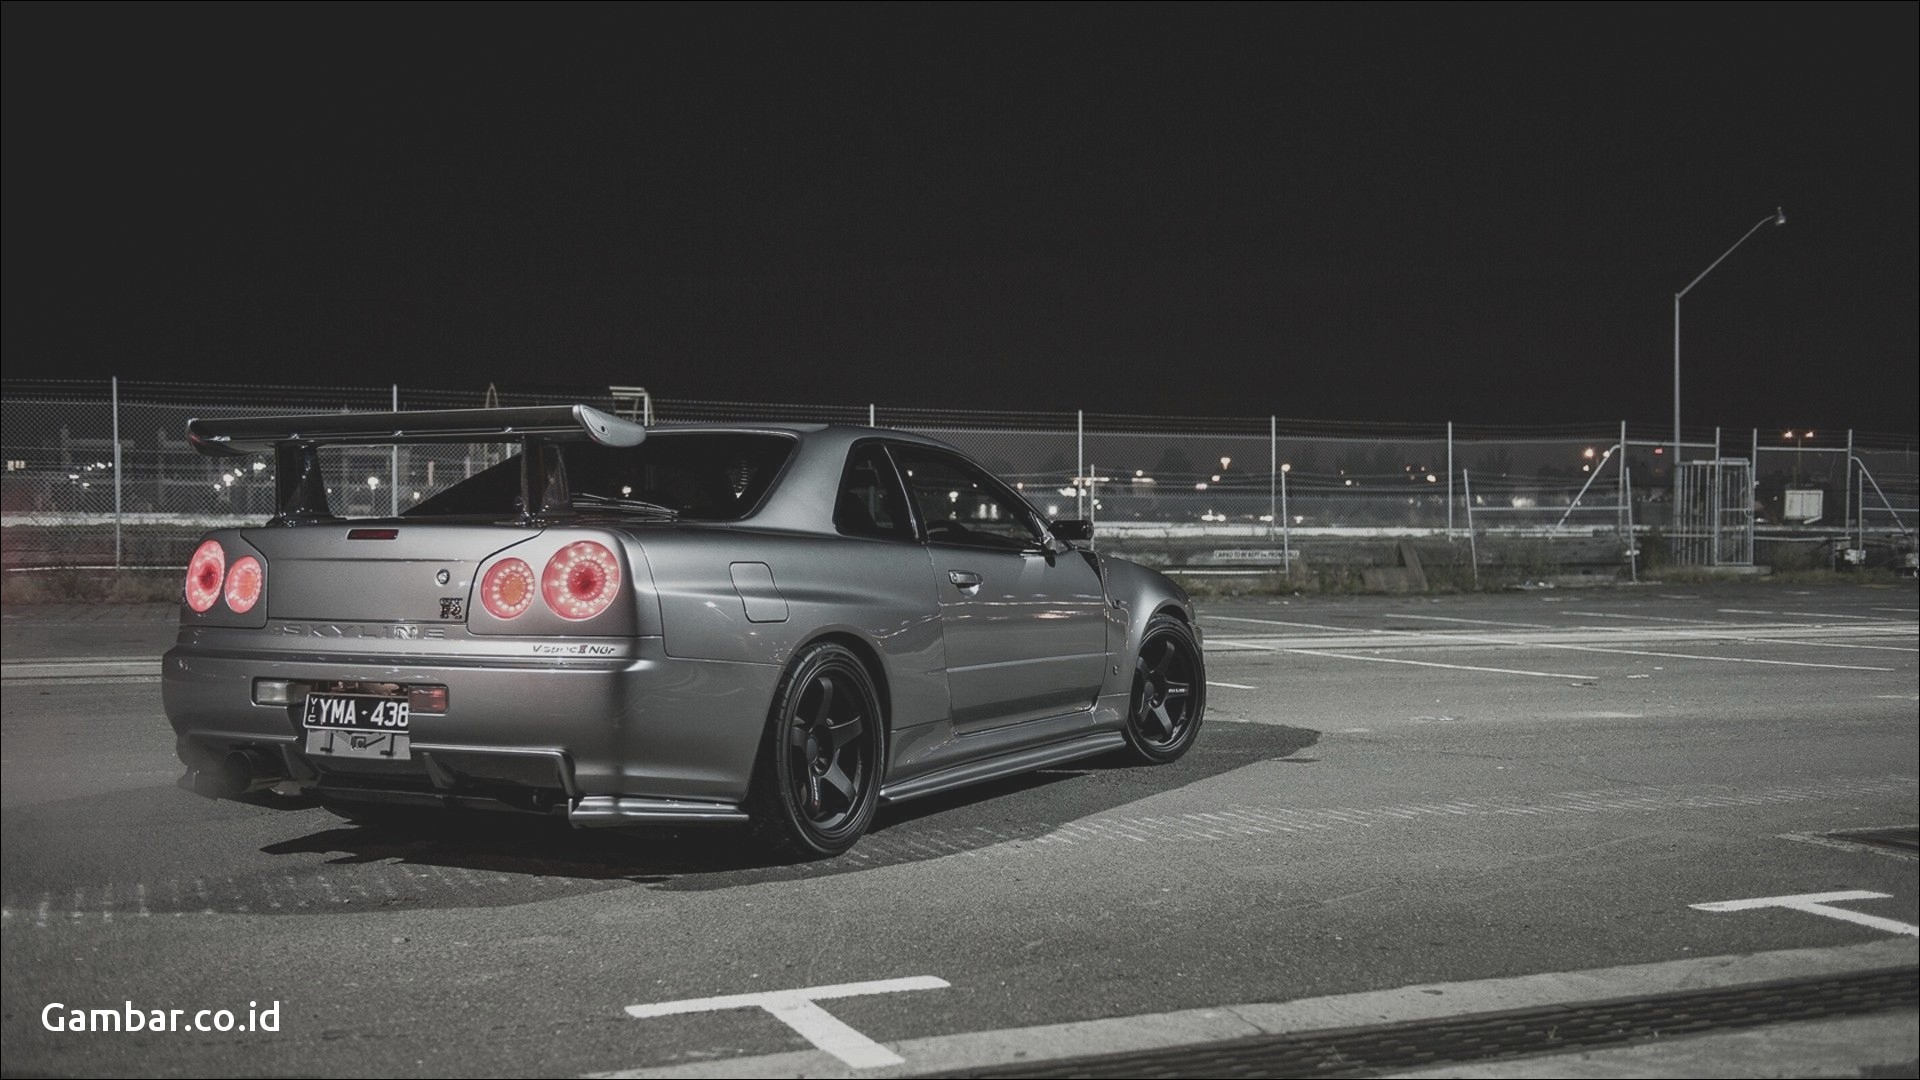 Wallpaper Dinding Rumah Terbaru Terbaru Untuk Download Gambar G Wallpaper Hd Nissan Skyline Gtr R34 Wallpaper Hd